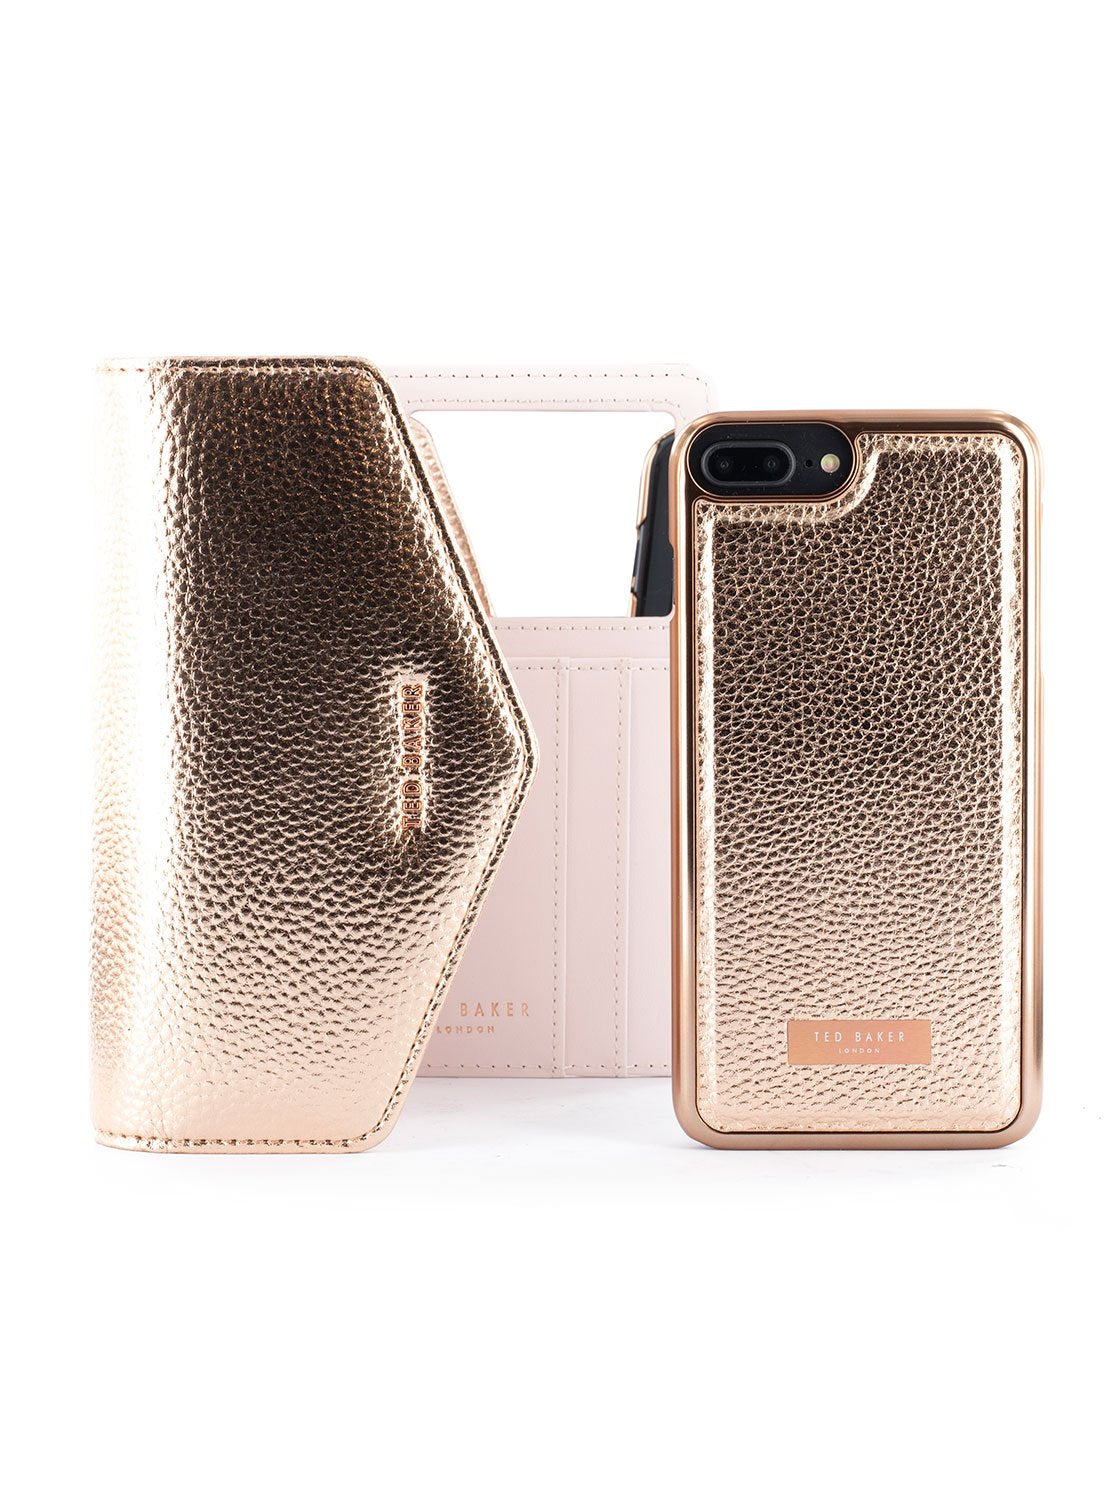 Bag with Case image of the Ted Baker Apple iPhone 8 Plus / 7 Plus phone case in Rose Gold